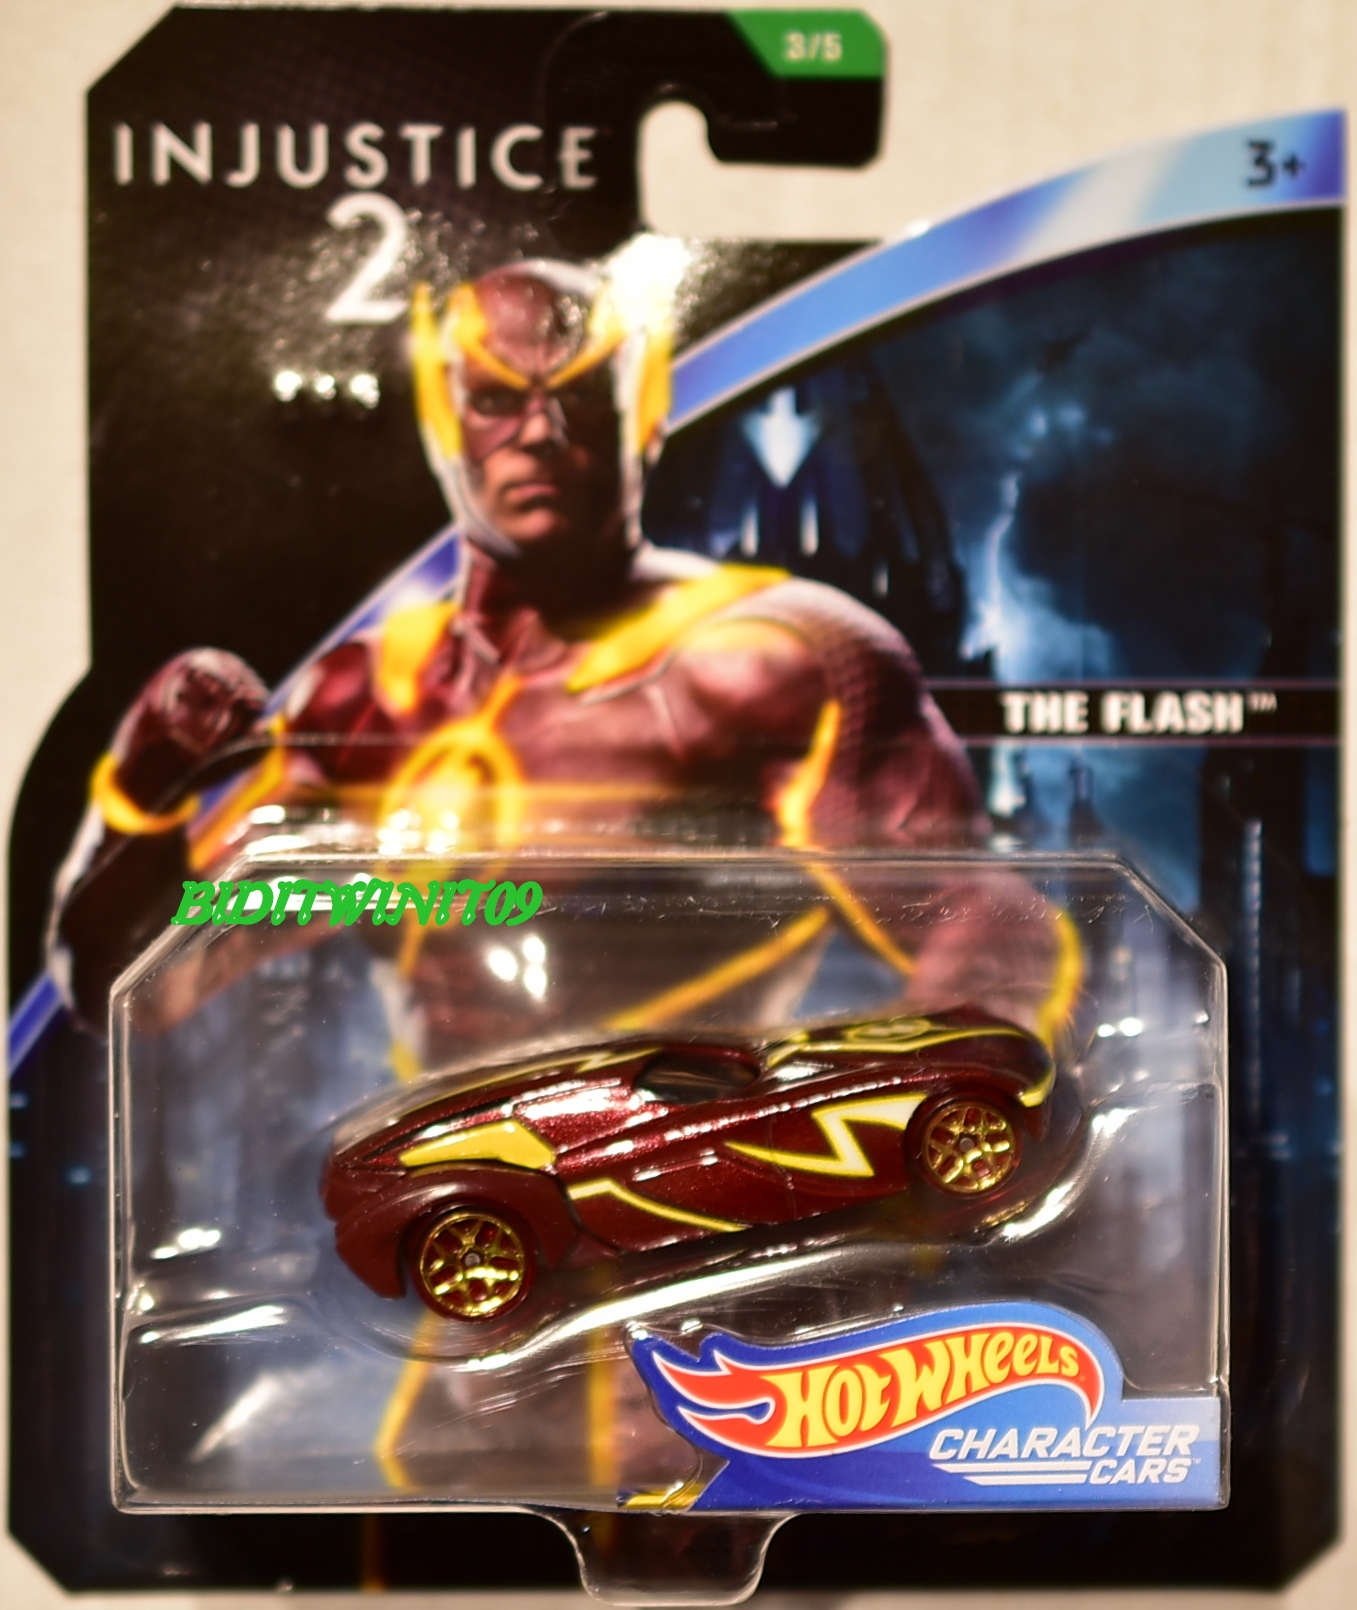 HOT WHEELS 2018 DC COMICS INJUSTICE 2 THE FLASH CHARACTER CARS